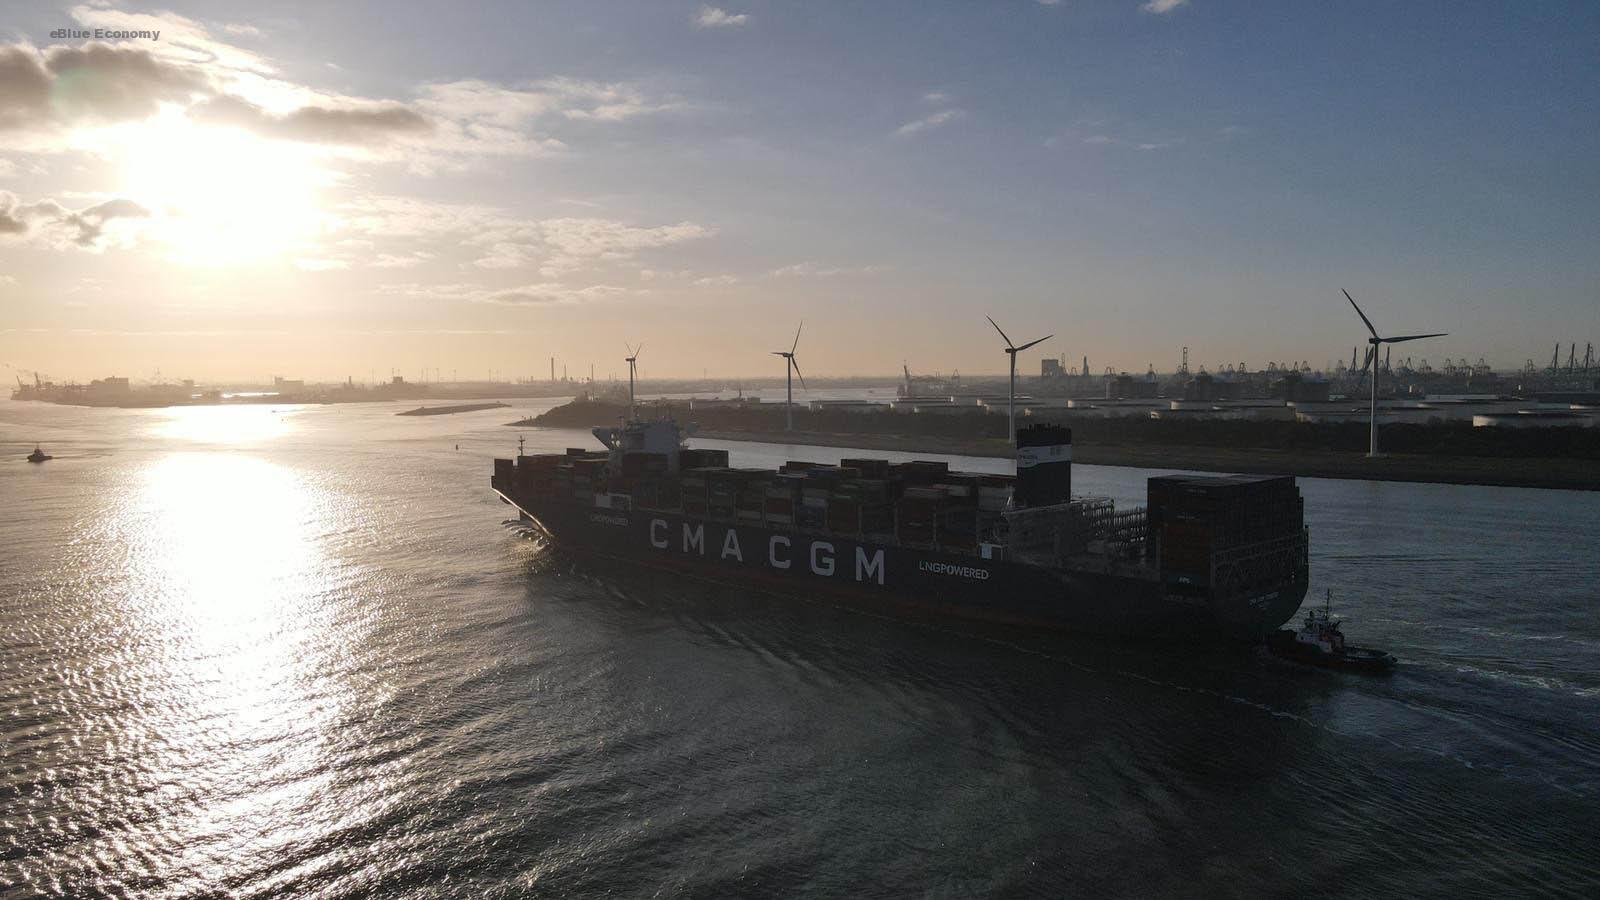 eBlue_economy_CMA CGM Group announces the order of 22 new vessels